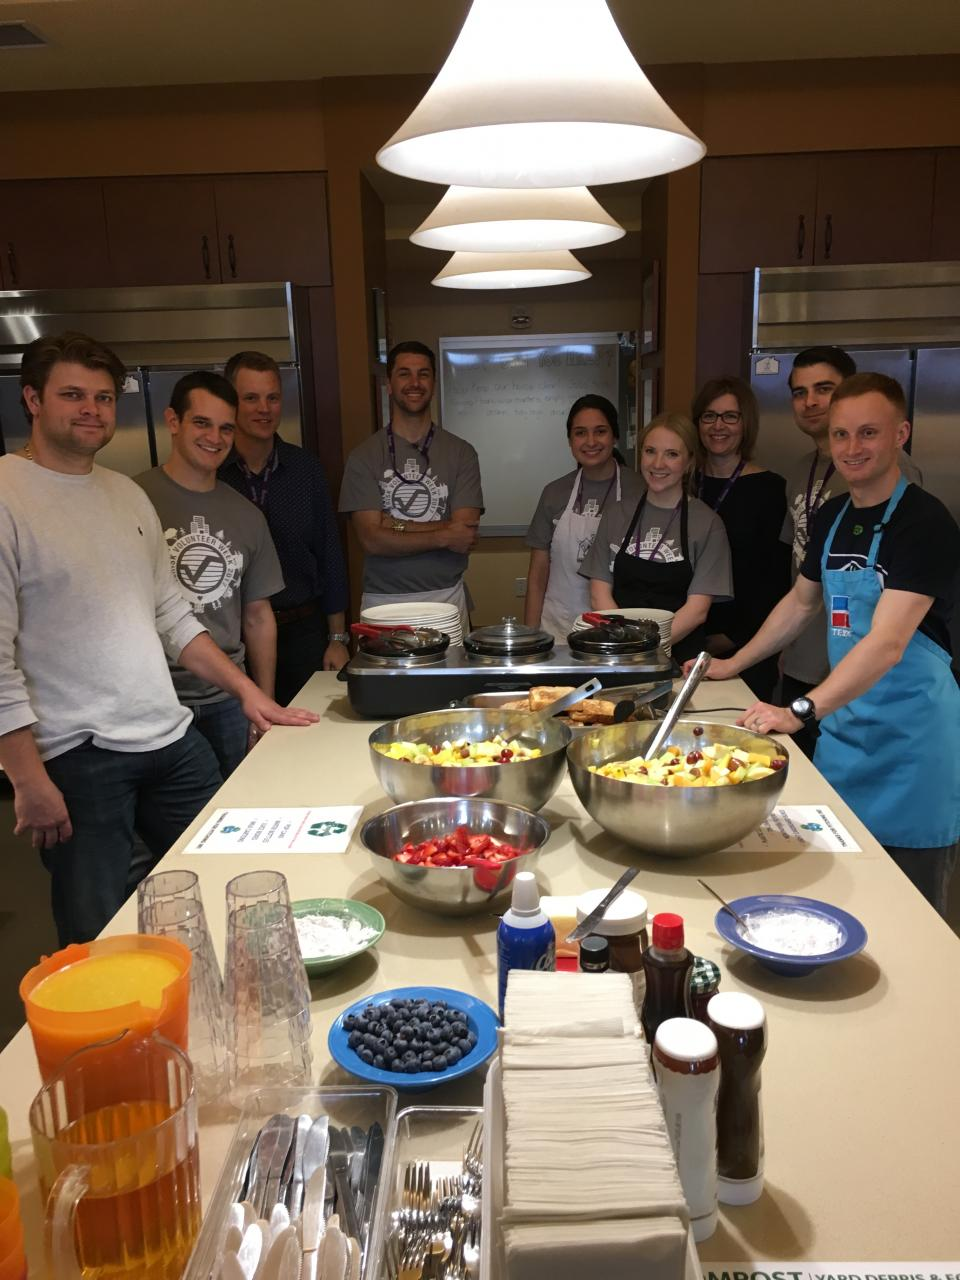 Verisk employees volunteered to prepare brunch at the Ronald McDonald House in Calgary, Alberta, Canada